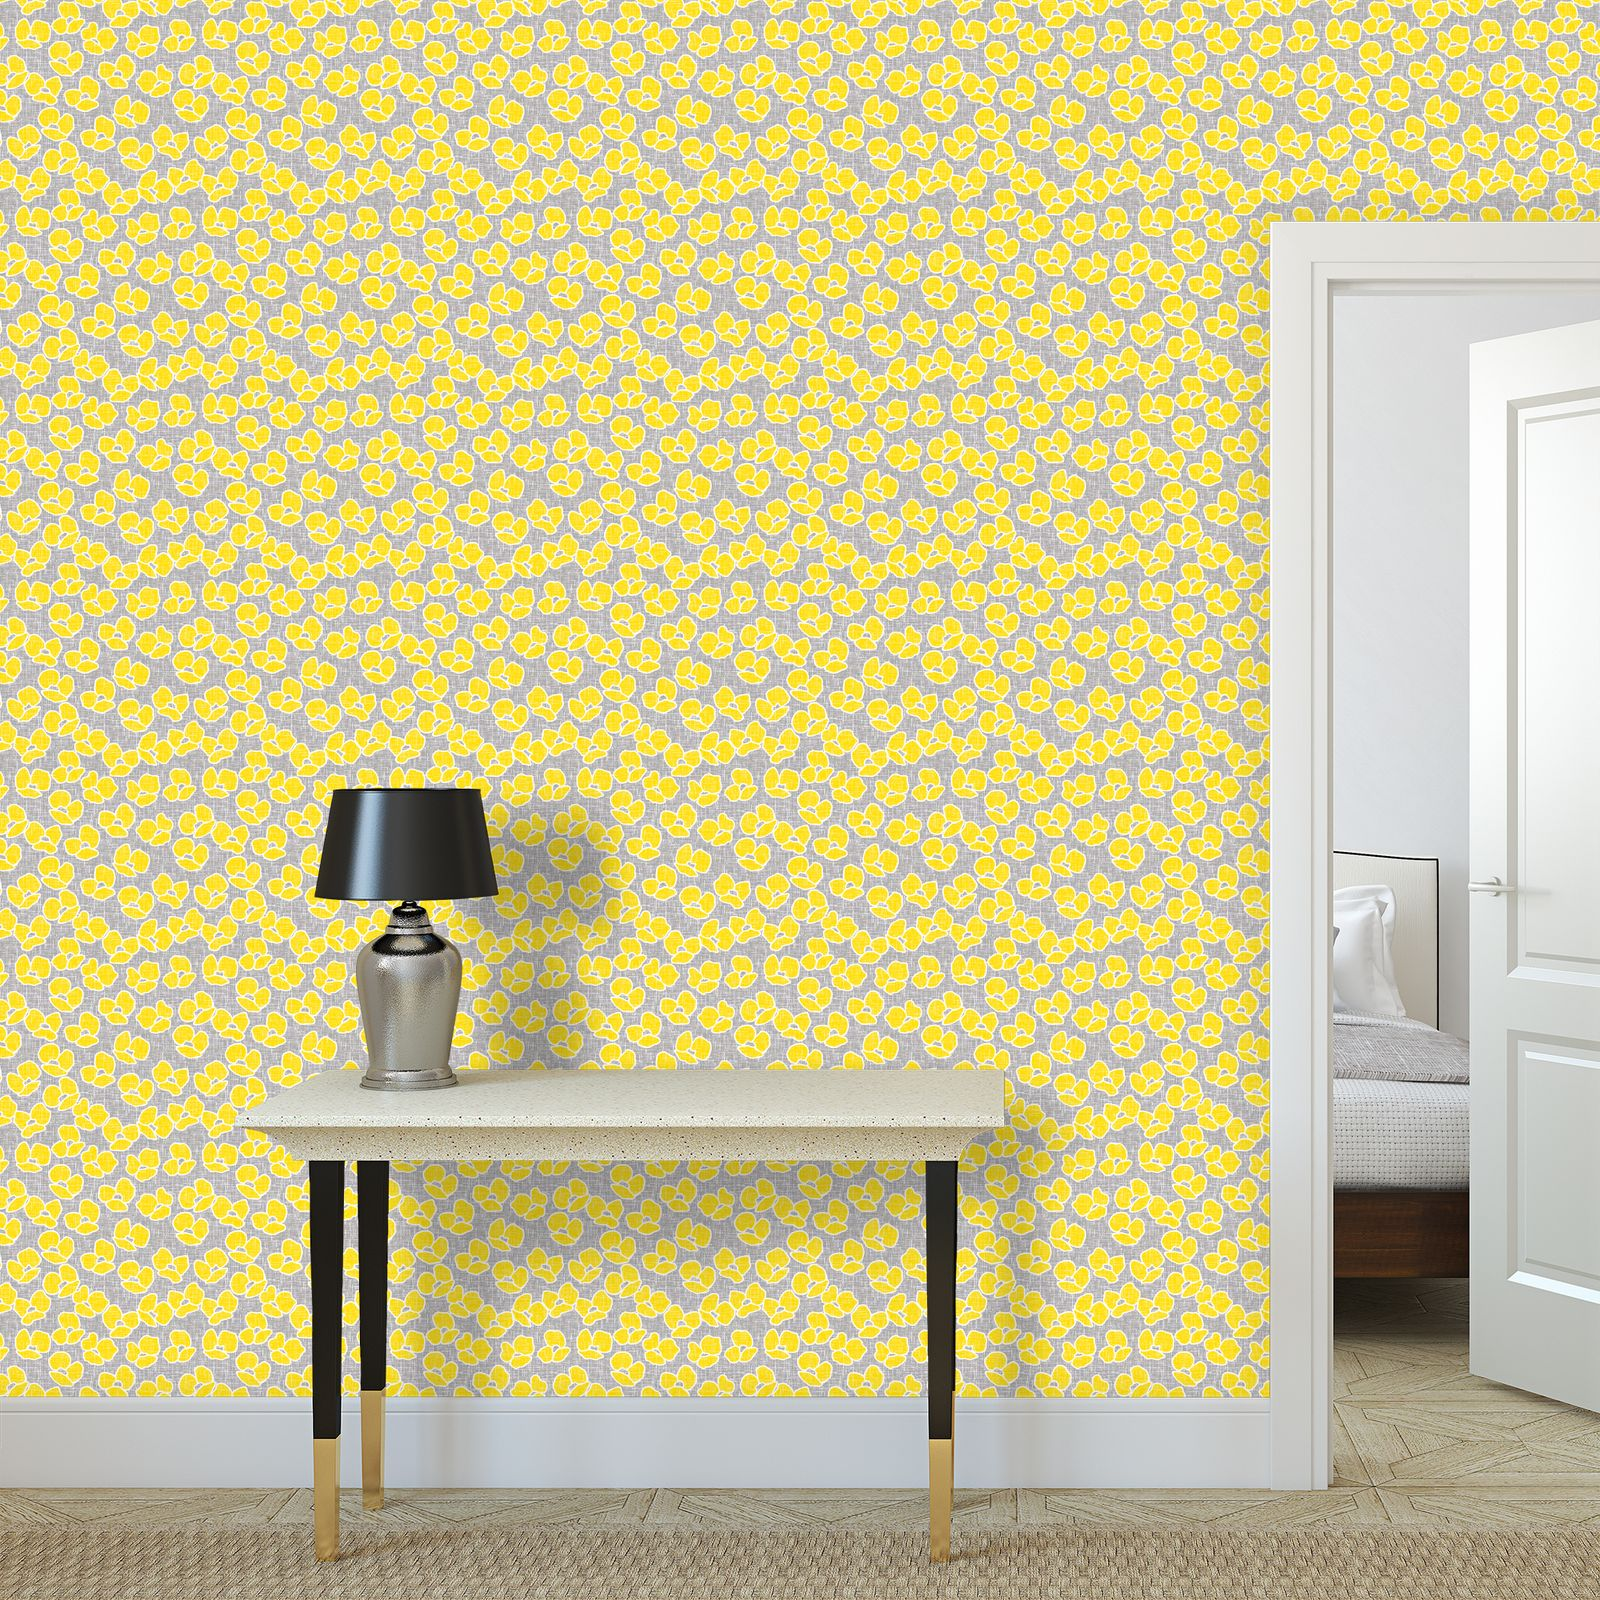 Sun poppies - Wallpaper Rolls - yellow flowers, gray flax, trendy, bright gift, summer, blooming, floral, gray flax - design by Tiana Lofd